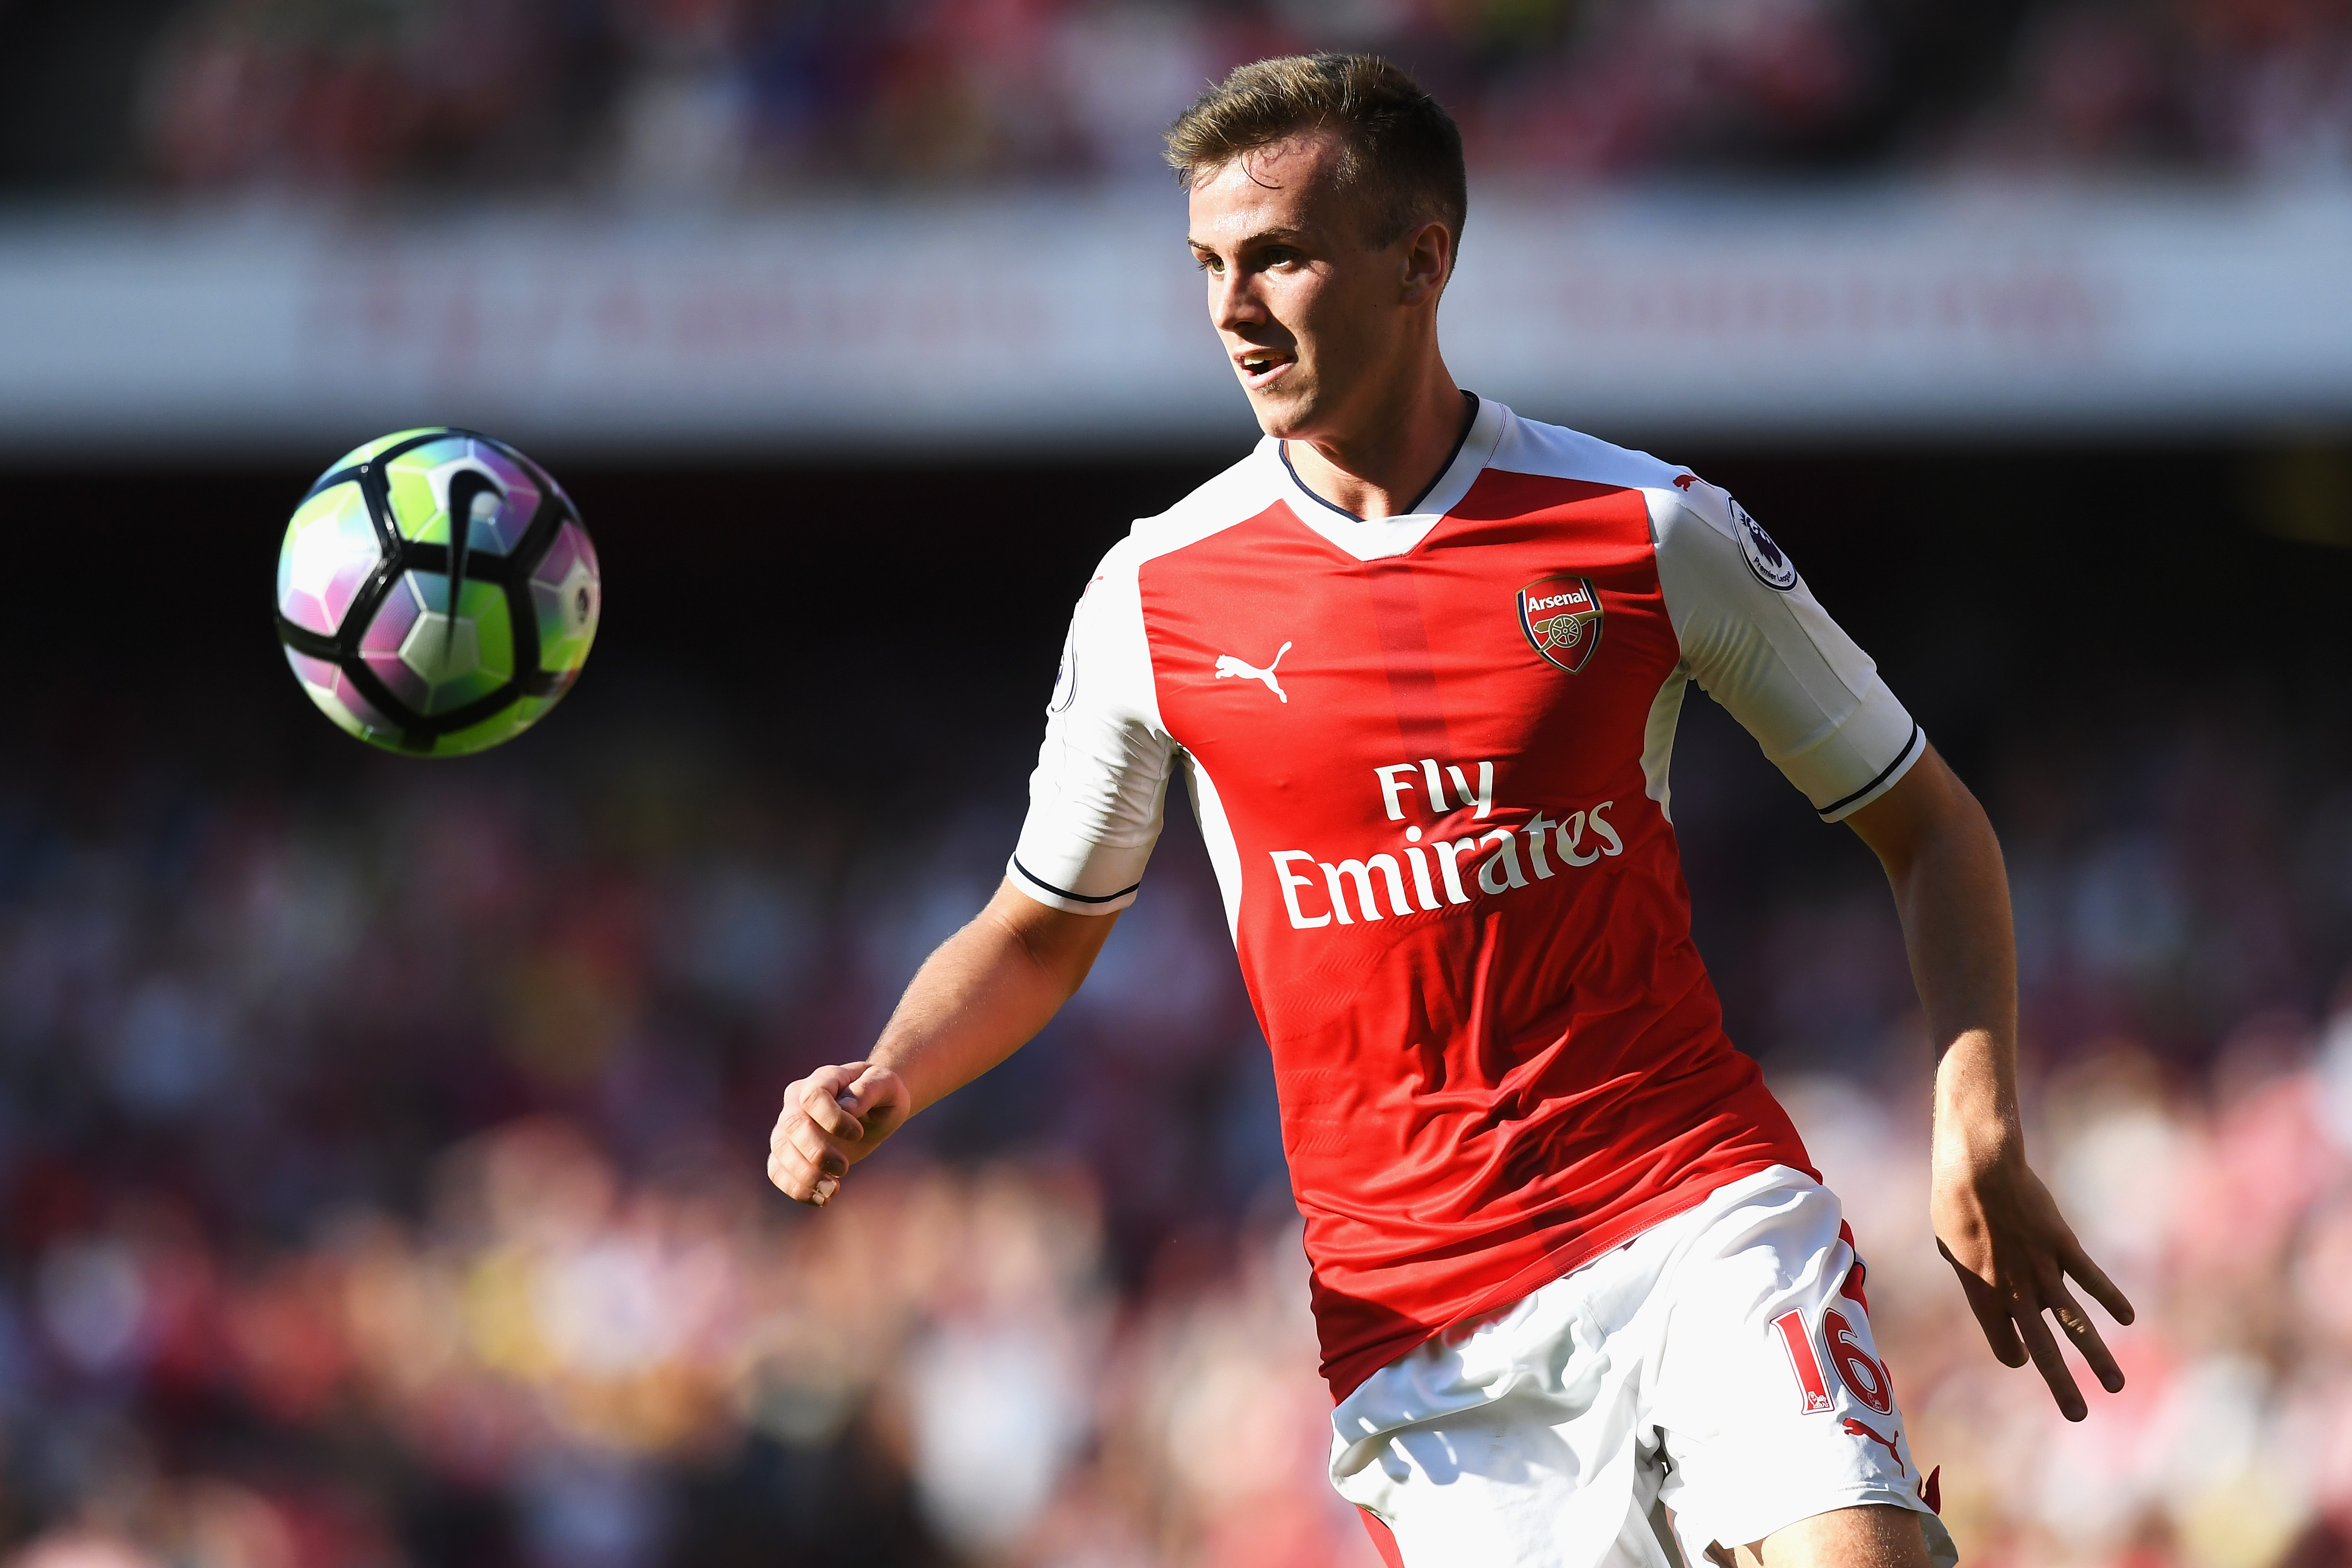 Arsenal should try and integrate Bielik in the same way they made Rob Holding an important player. (Photo courtesy: AFP/Getty)